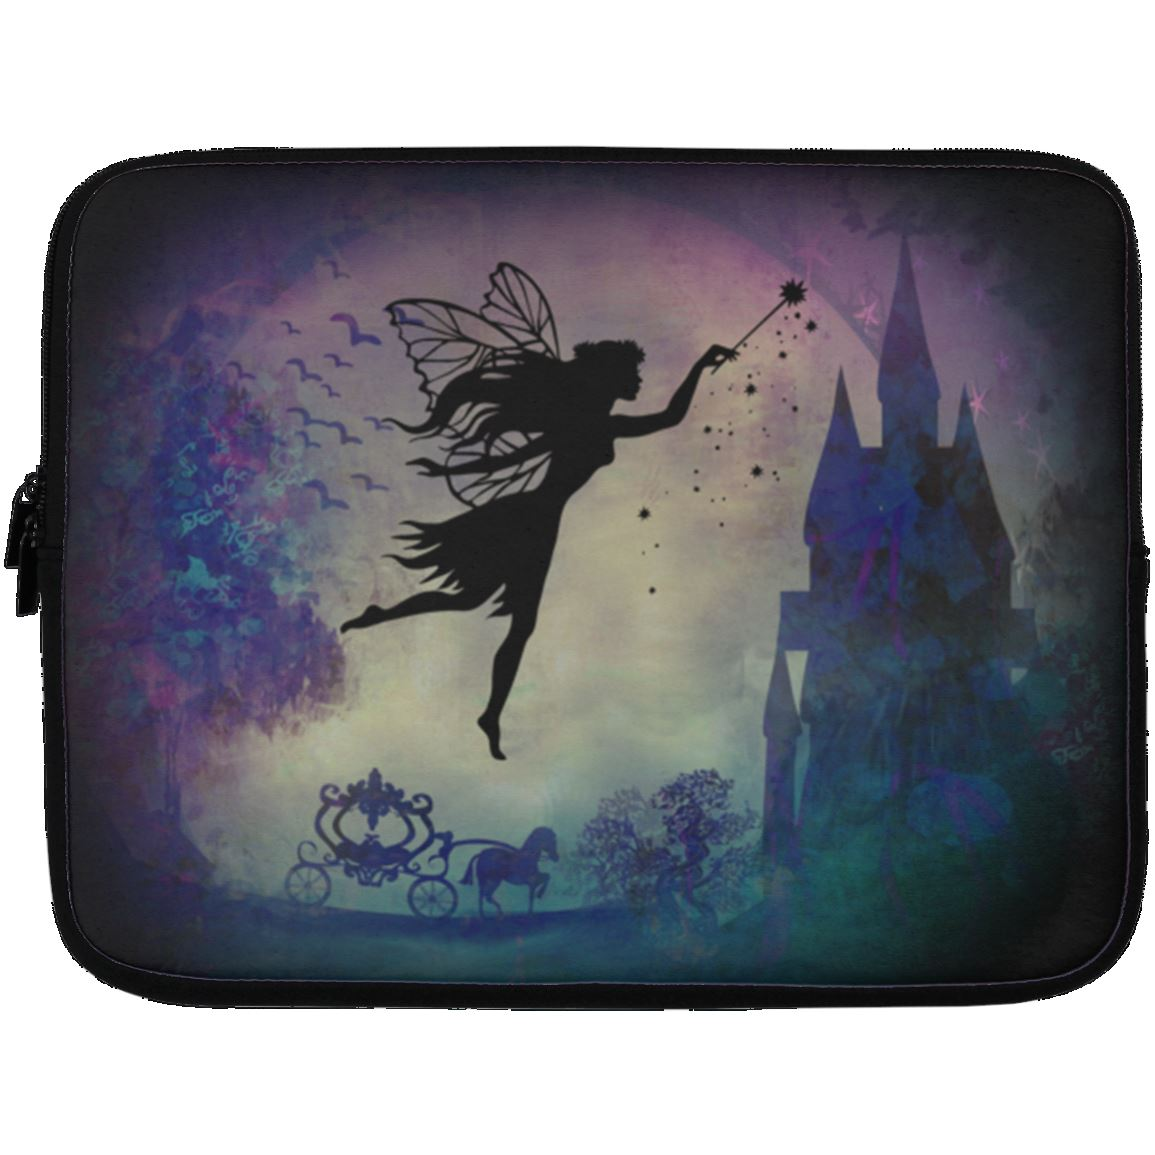 Fairytale Laptop Sleeve Apparel Laptop Sleeve - 13 inch Black One Size